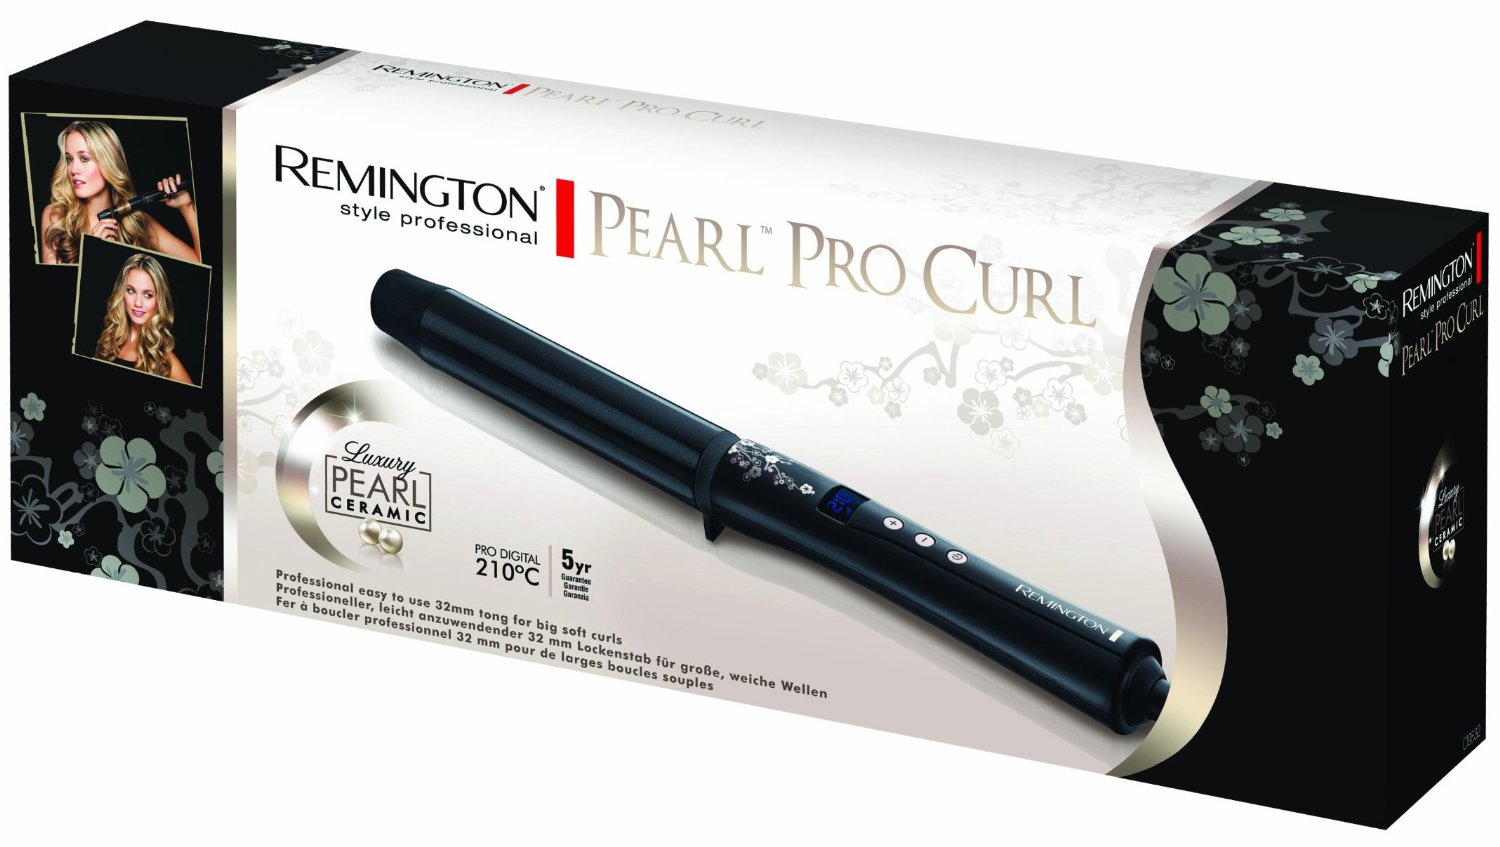 how to use curling tongs correctly